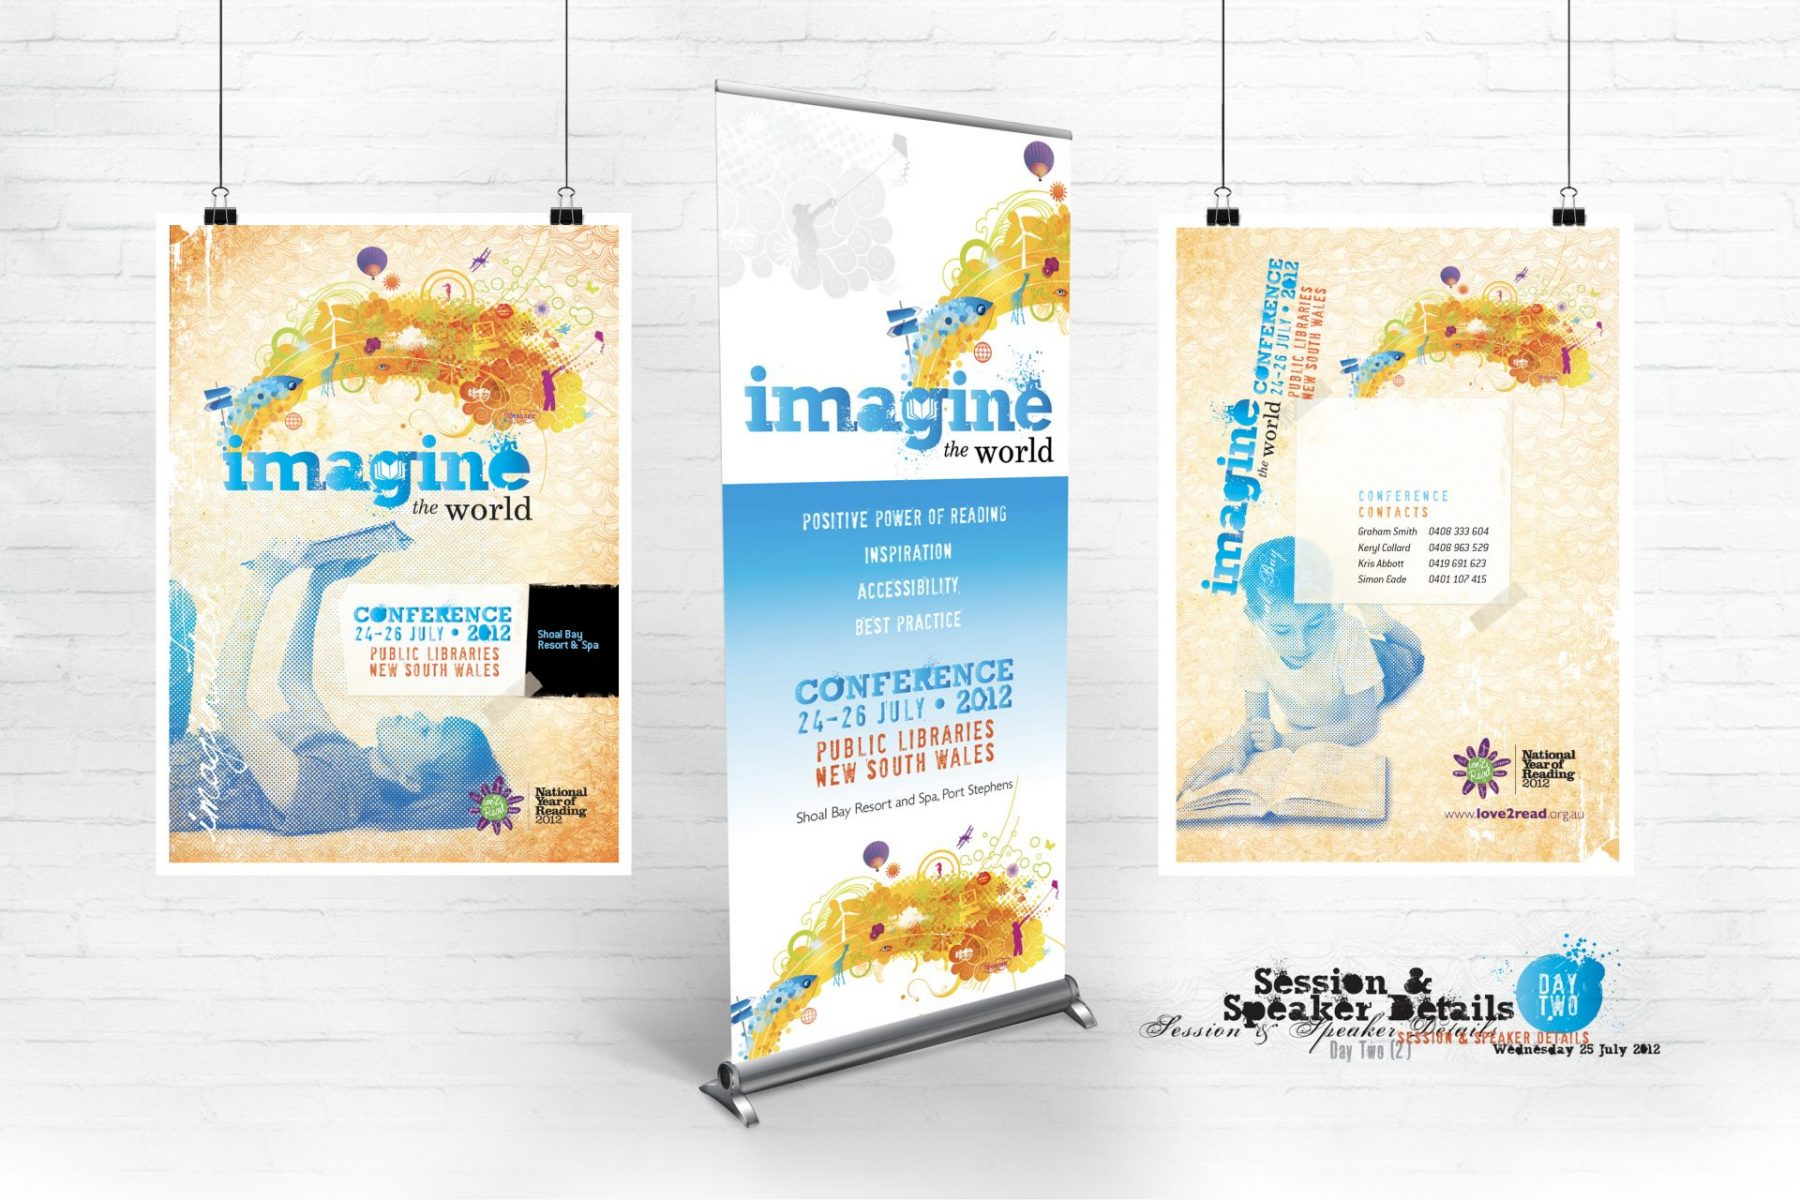 Public Libraries New South Wales, Imagine the World Conference Pullup Banner and Program Covers